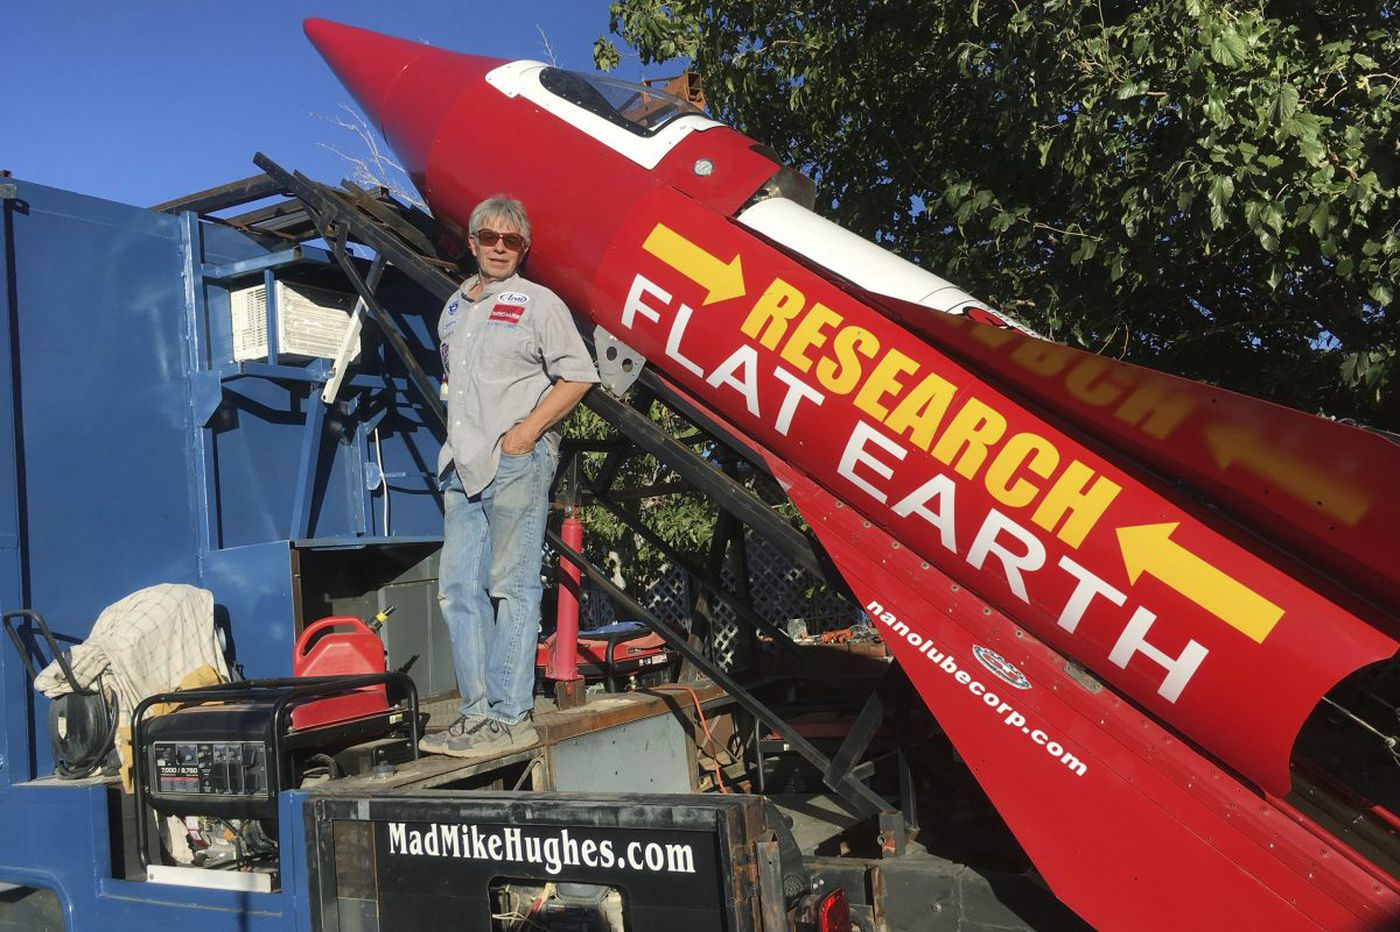 Calif. man about to launch himself in his homemade rocket to prove the earth is flat